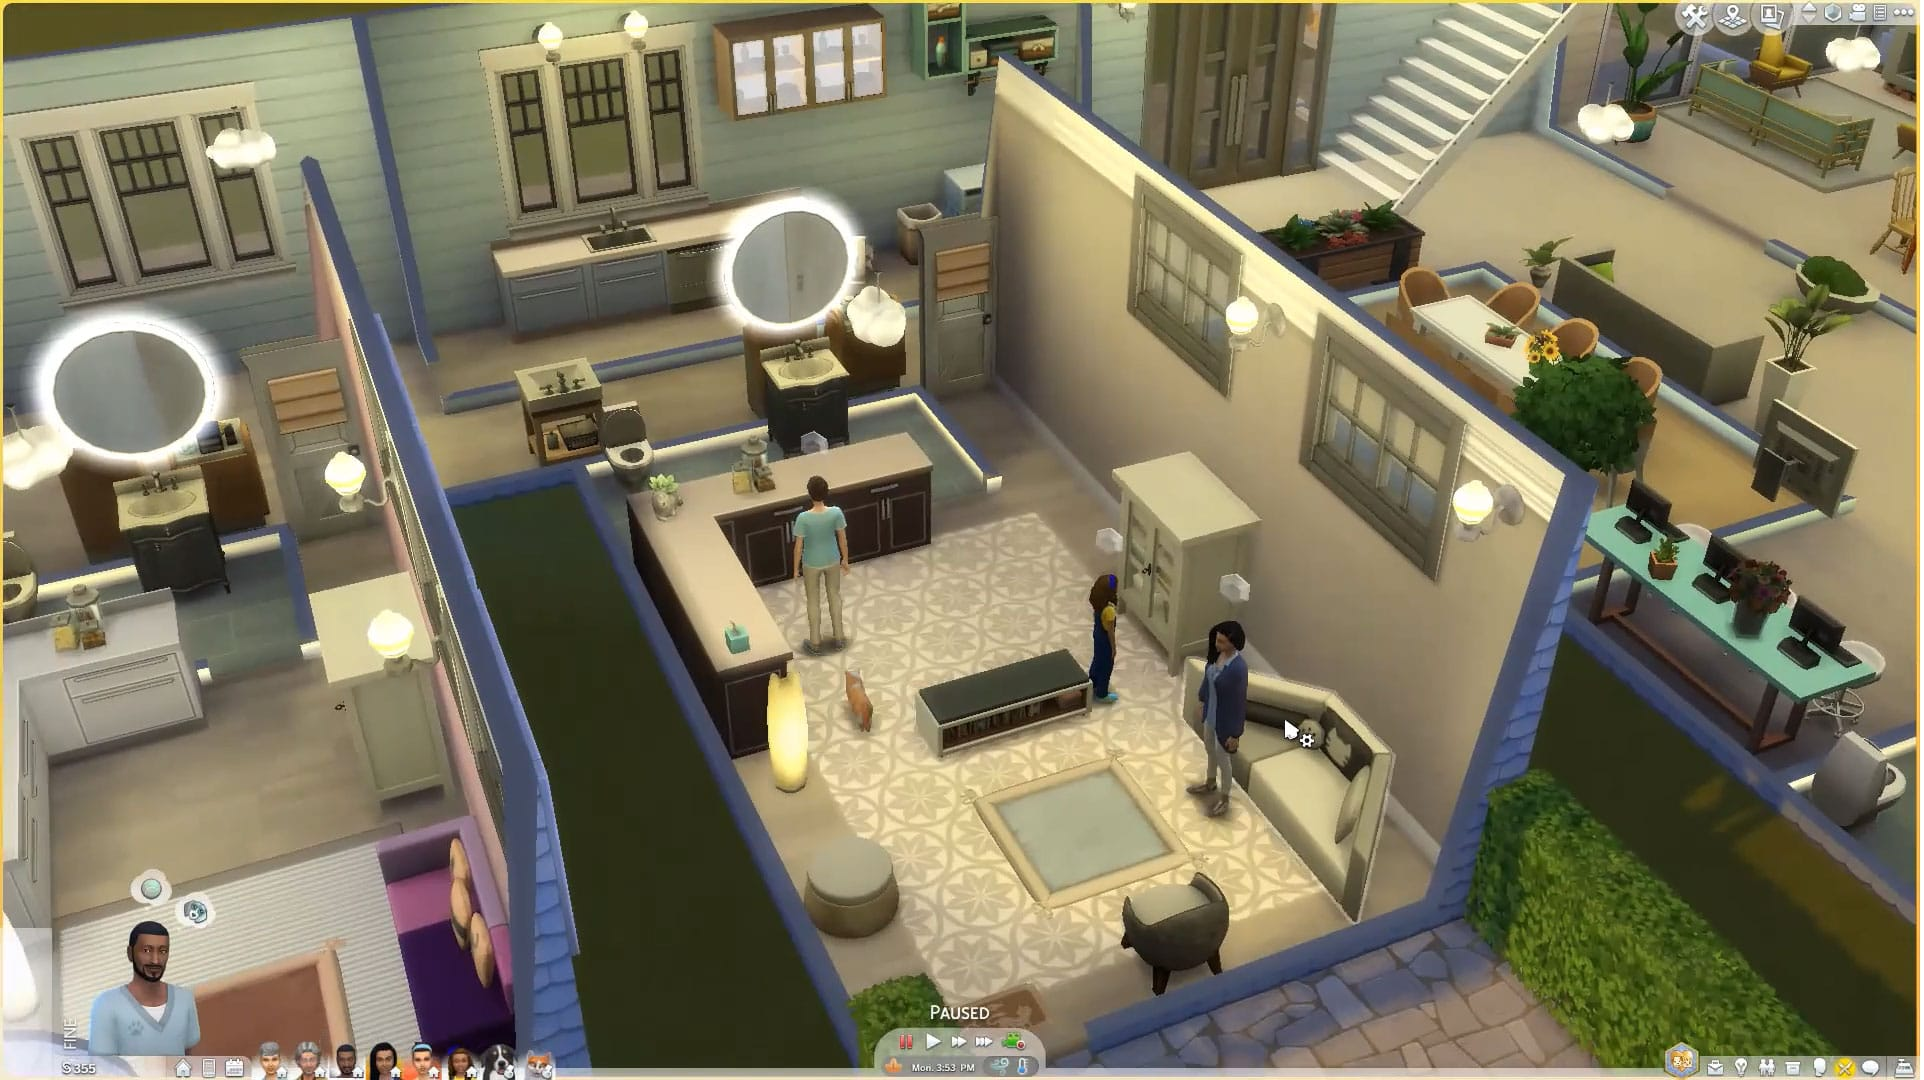 entire veterinary hospital in the video game The Sims